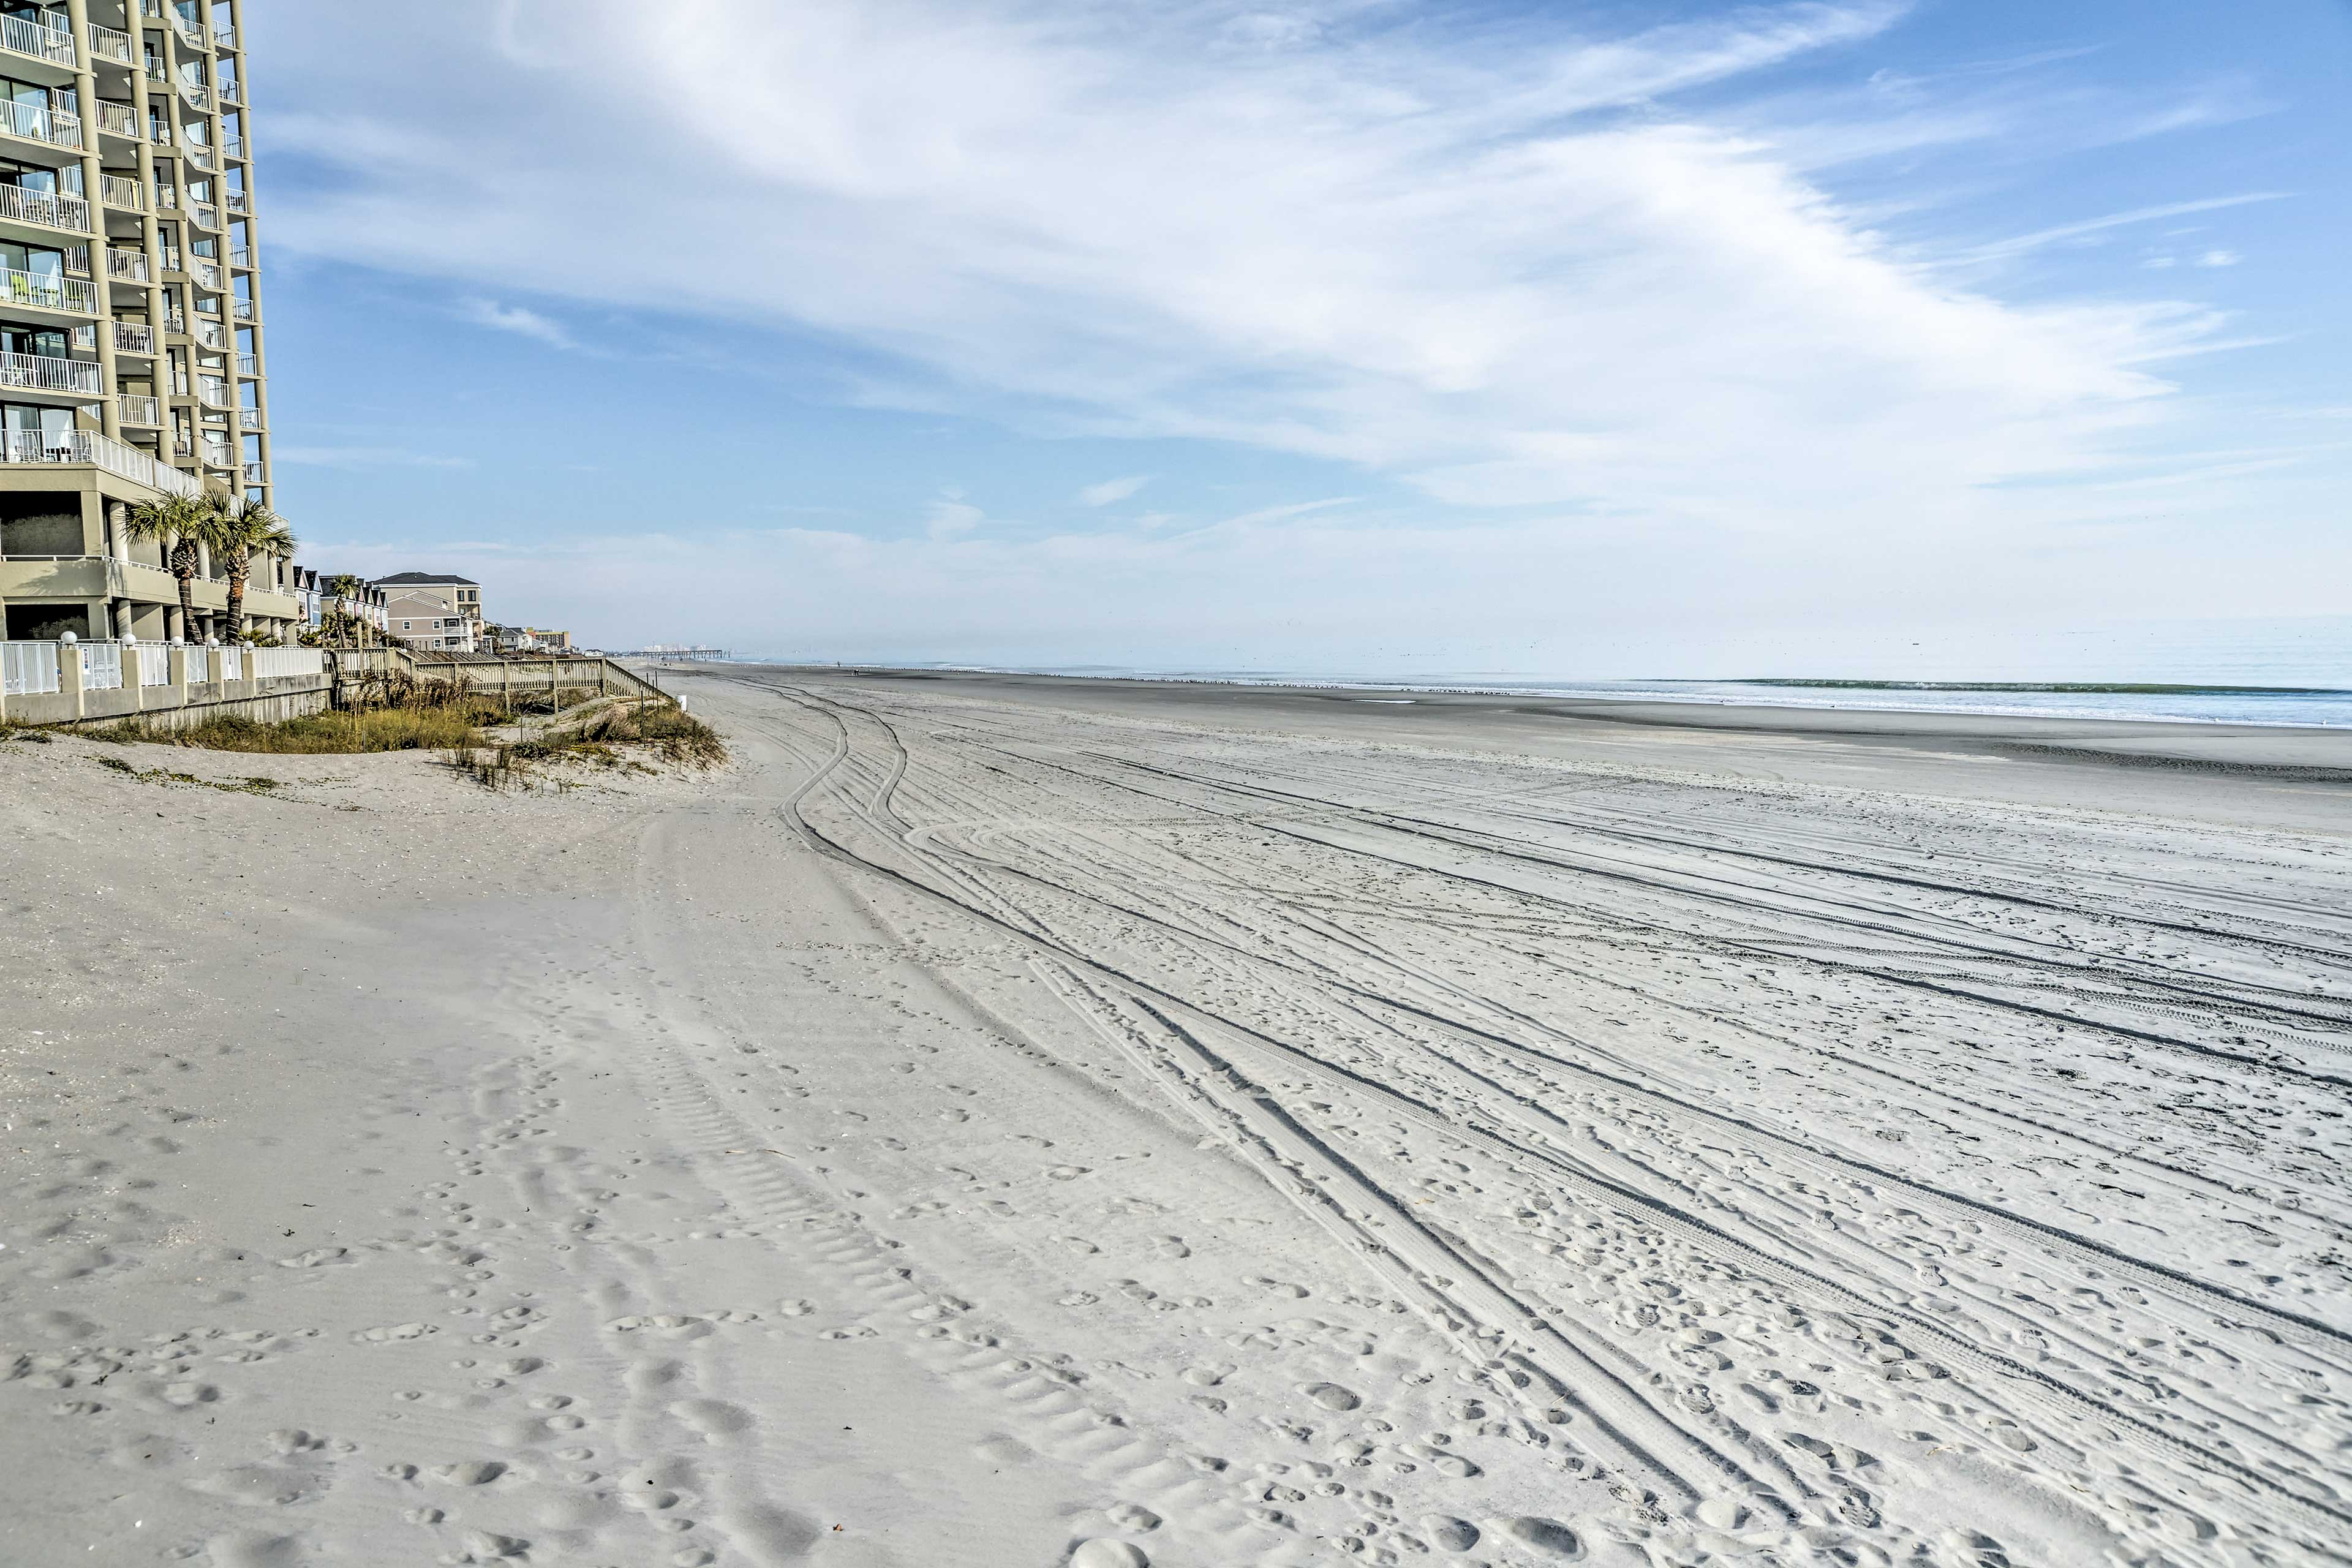 White sandy beaches await just 200 steps from this home!